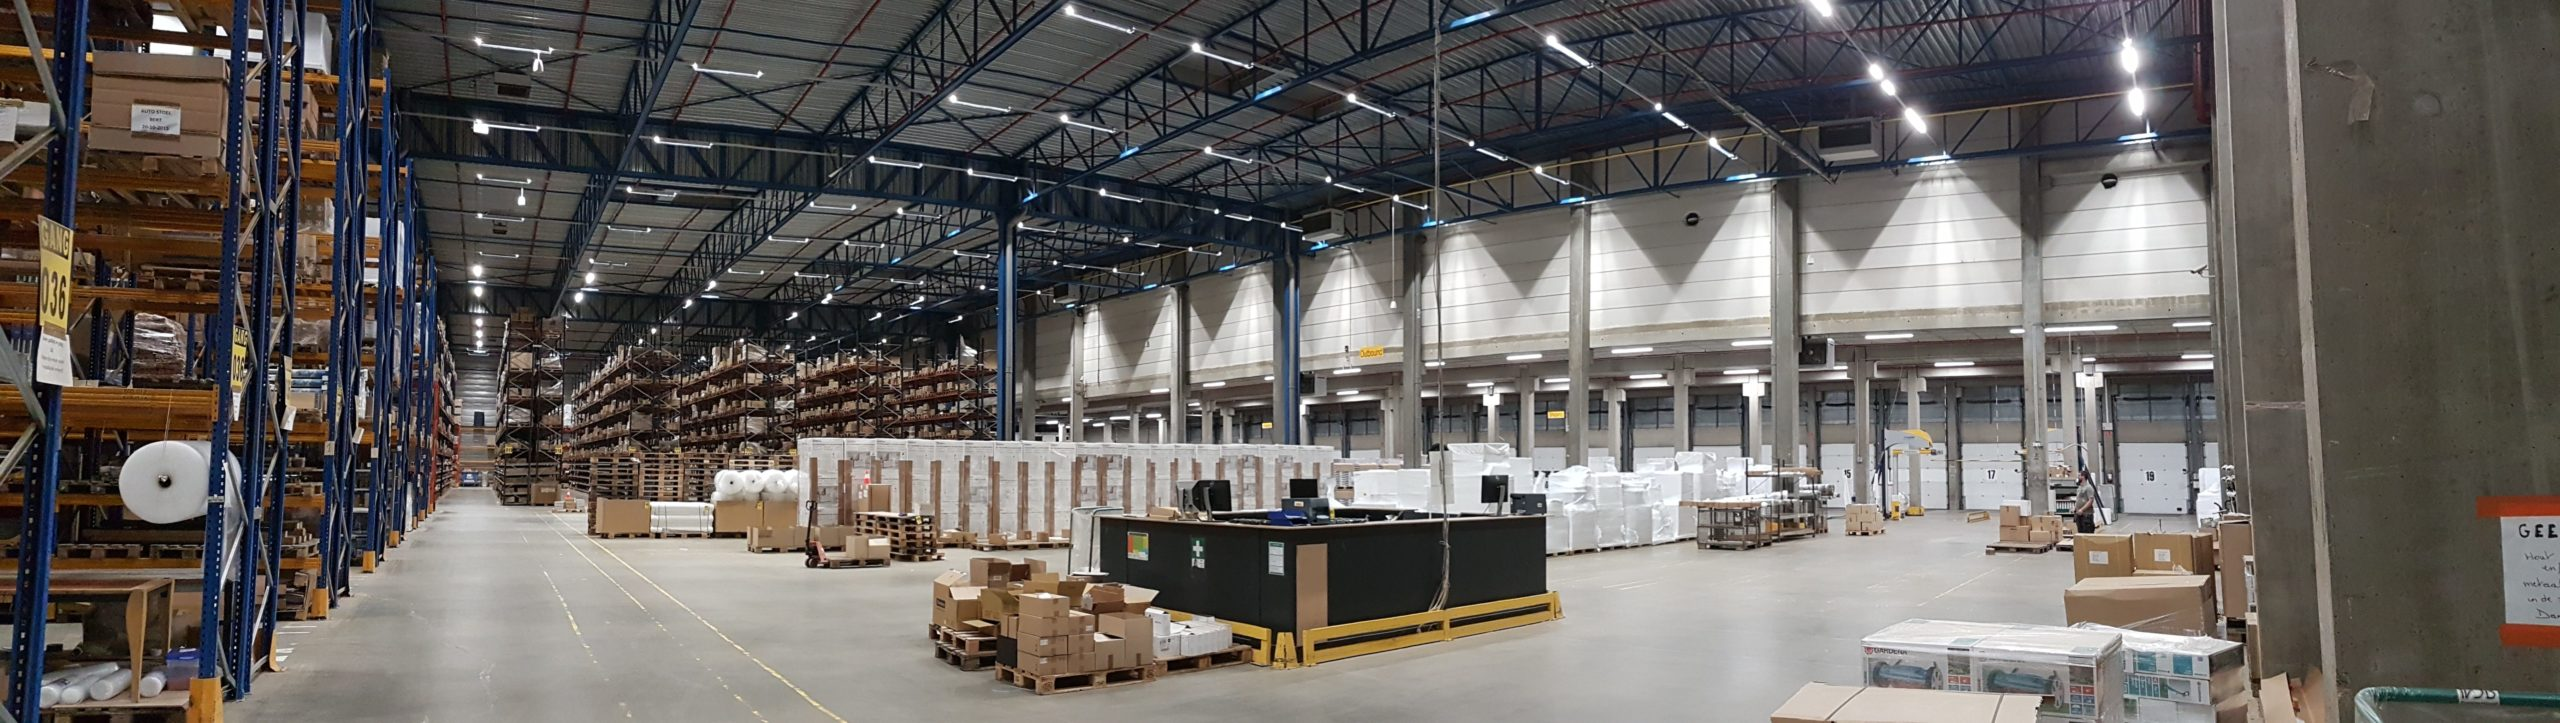 VEKO lighsystems industriele verlichting TNT LED lijnverlichthing lumen lux 4000k gripple